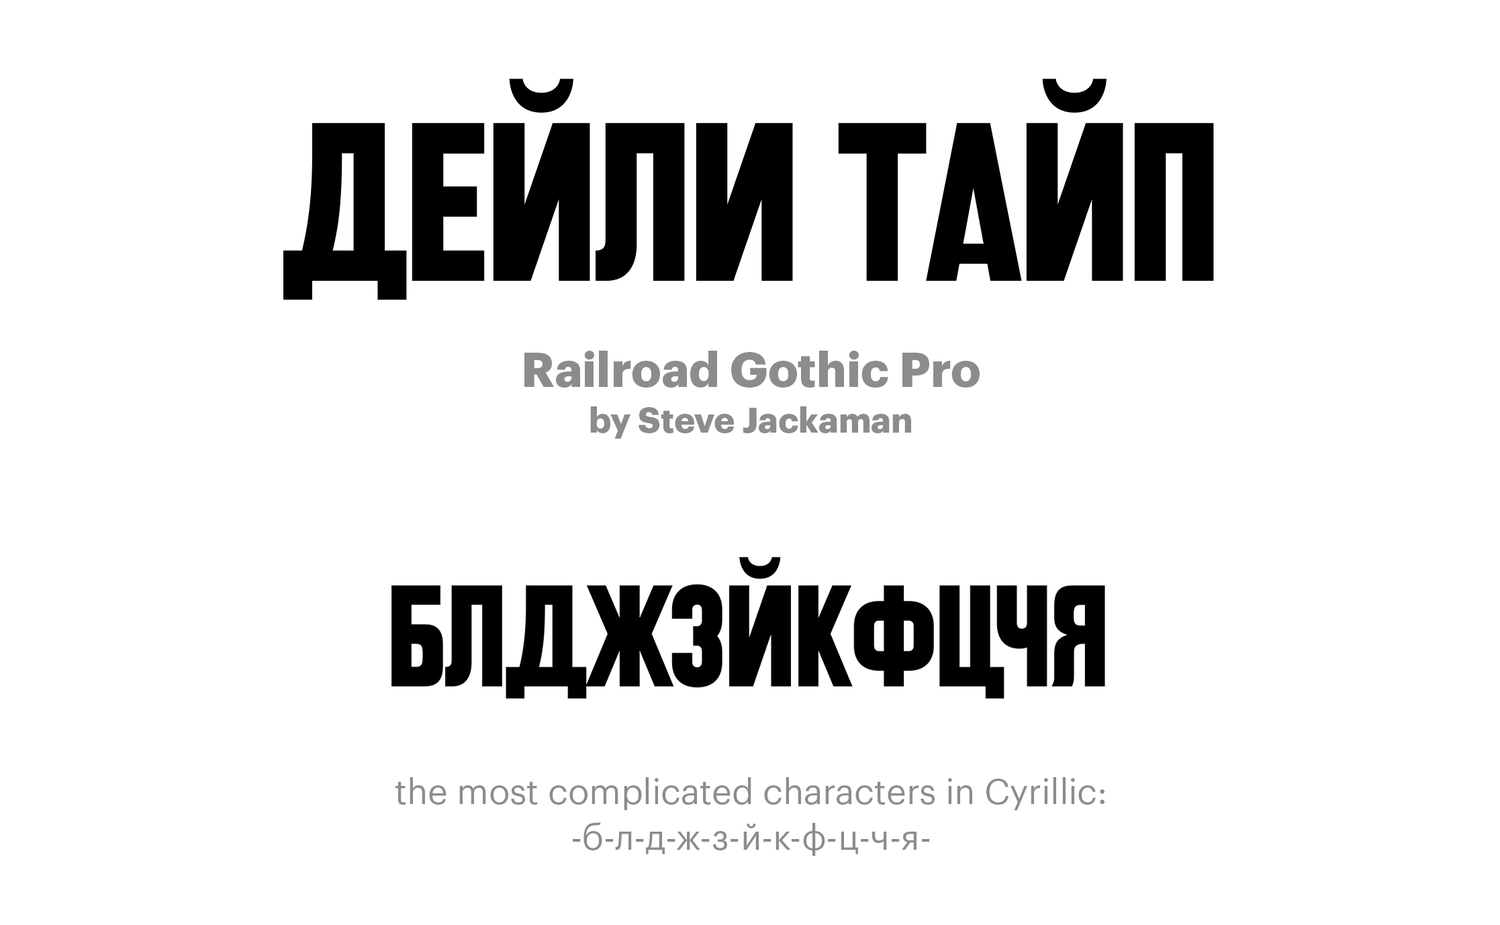 Railroad-Gothic-Pro-by-Steve-Jackaman